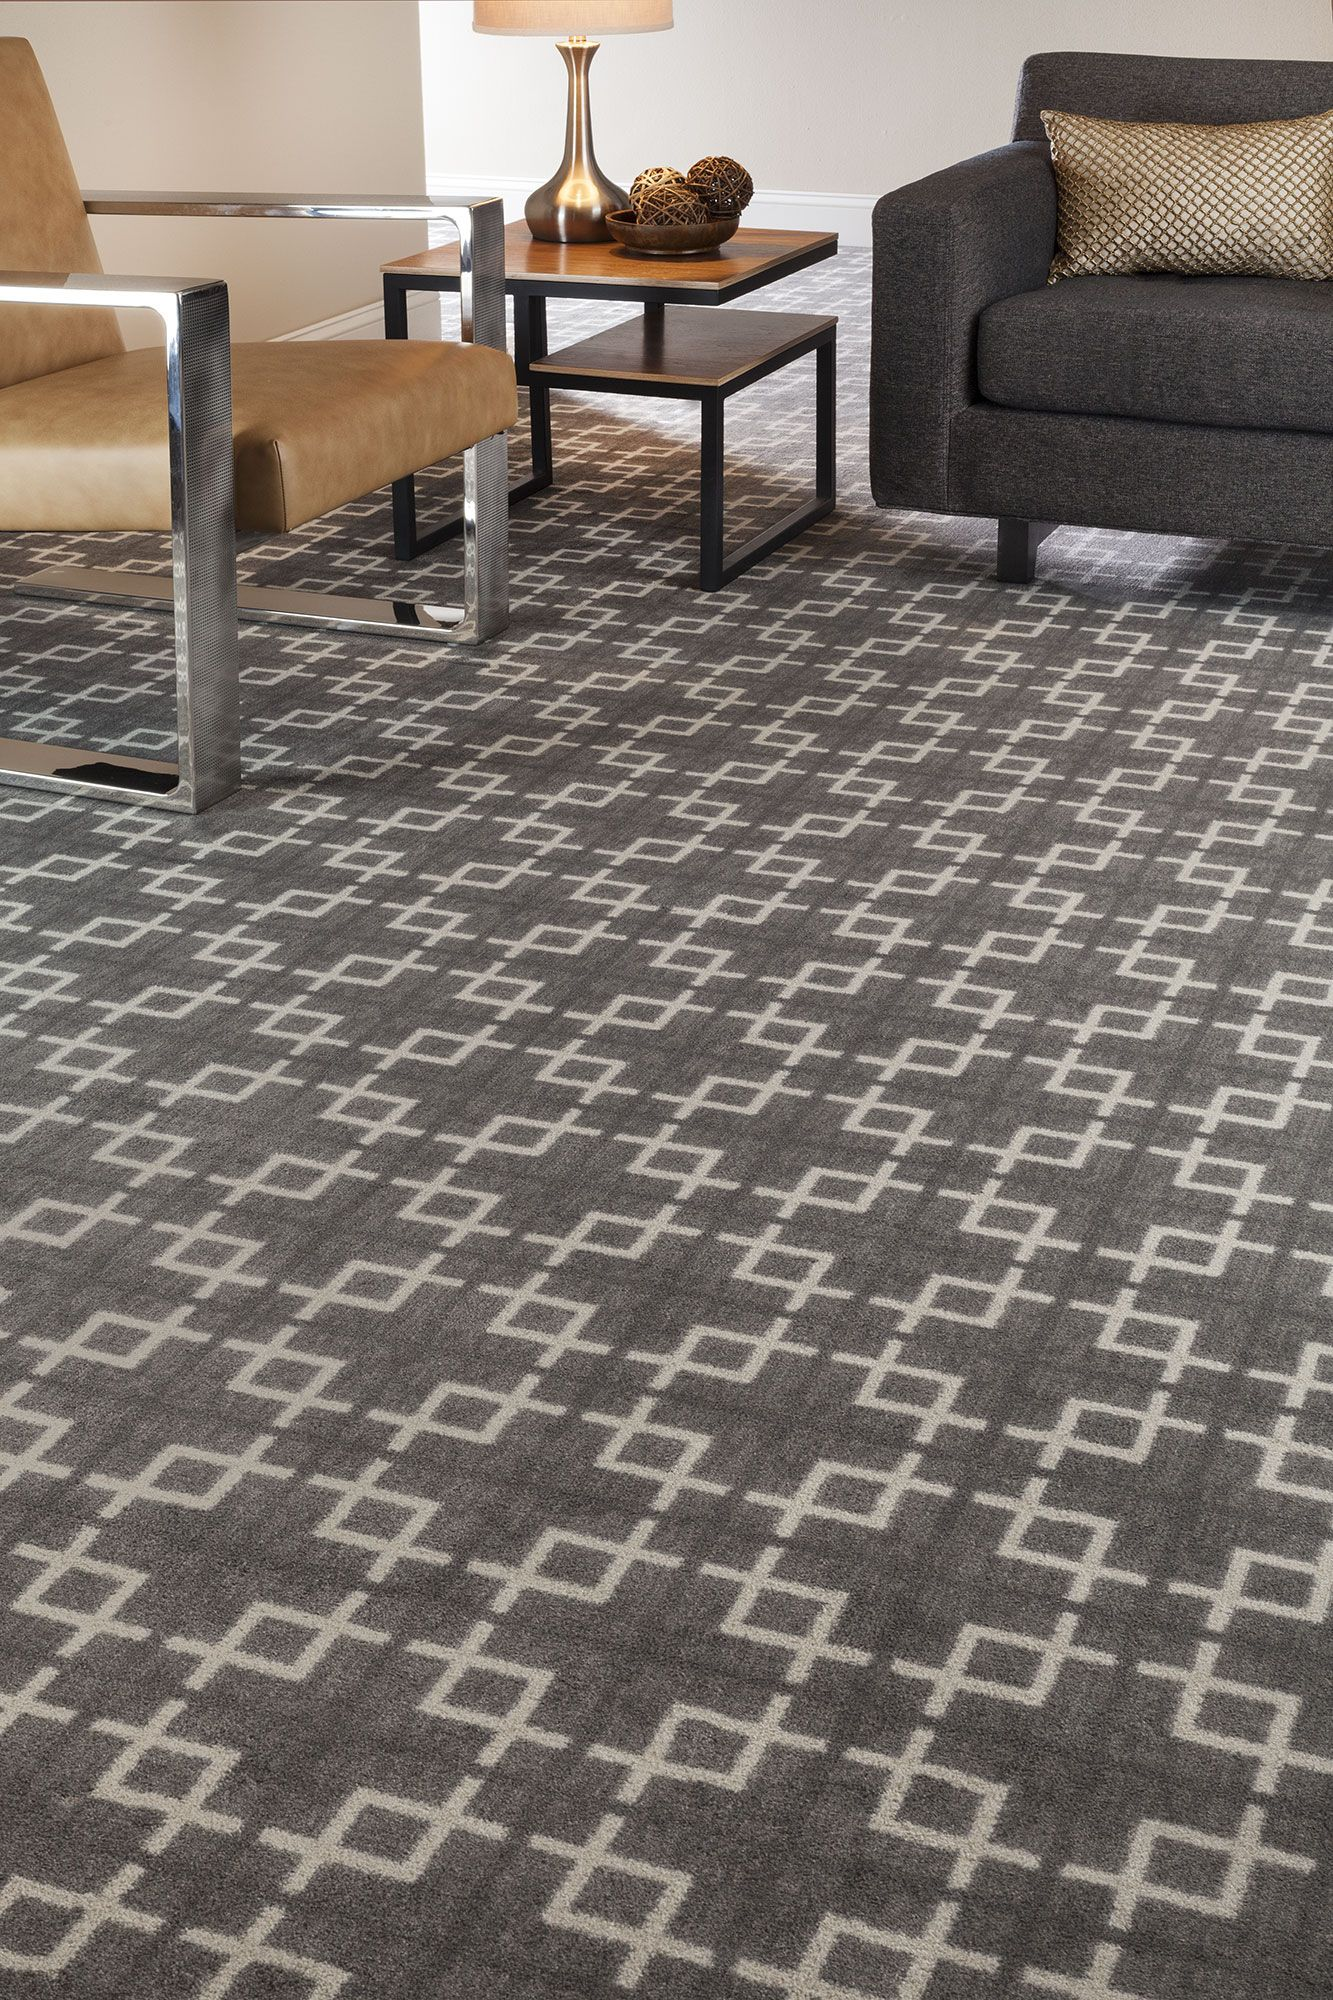 Patterned Carpet Geometric Patterned Carpet Gray Cream Home Office Ideas